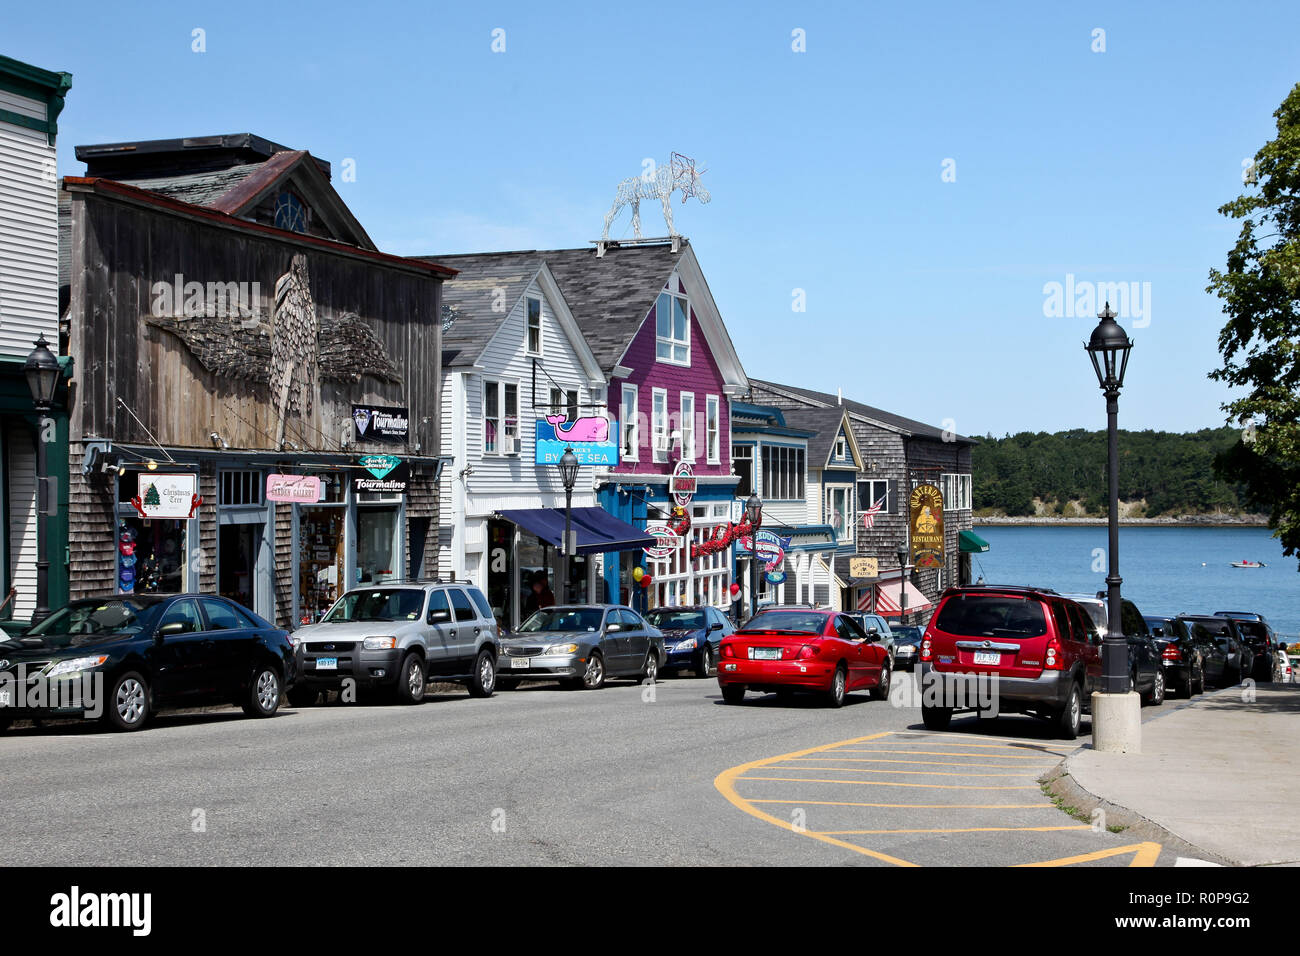 BAR HARBOR-AUGUST 08, 2010: Bar Harbor  architecture in downtown near Frenchman Bay in Maine, USA. - Stock Image